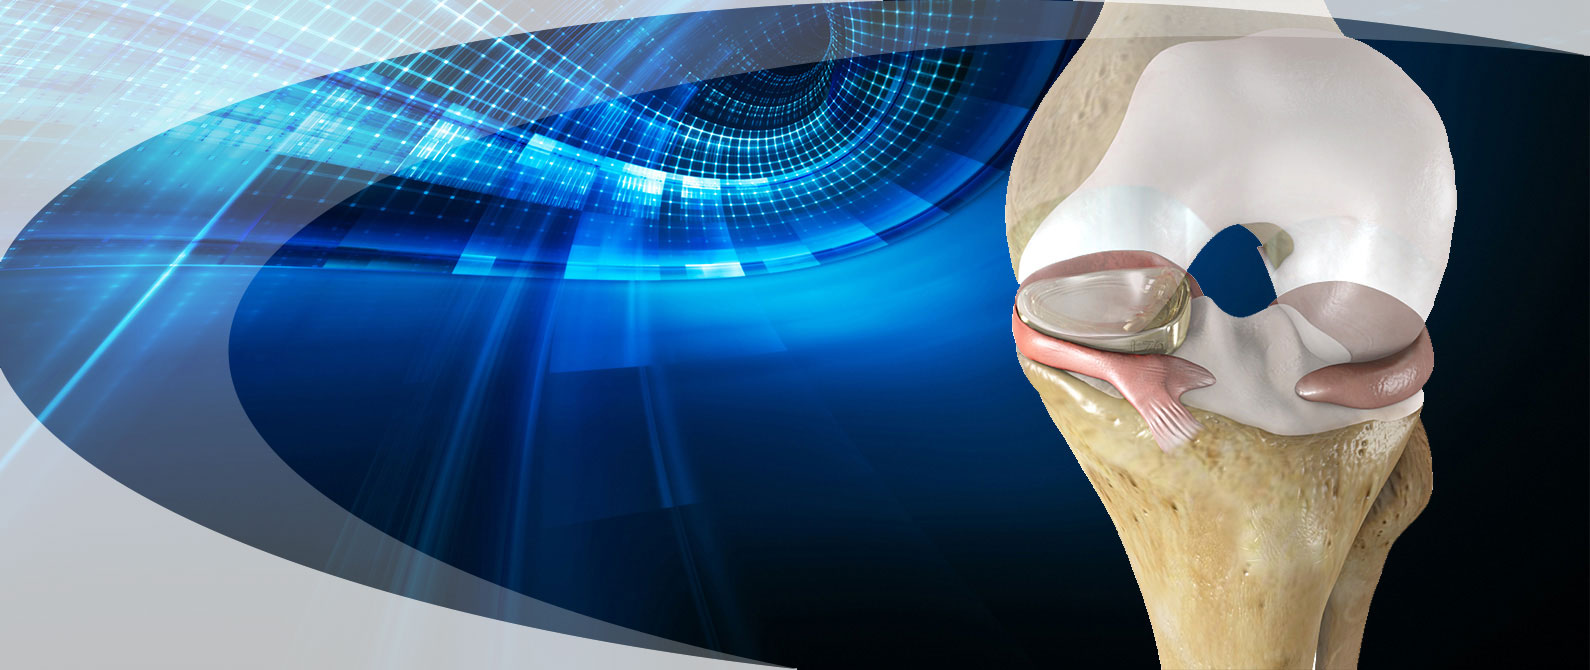 bone-knee-meniscus-pain-treatment